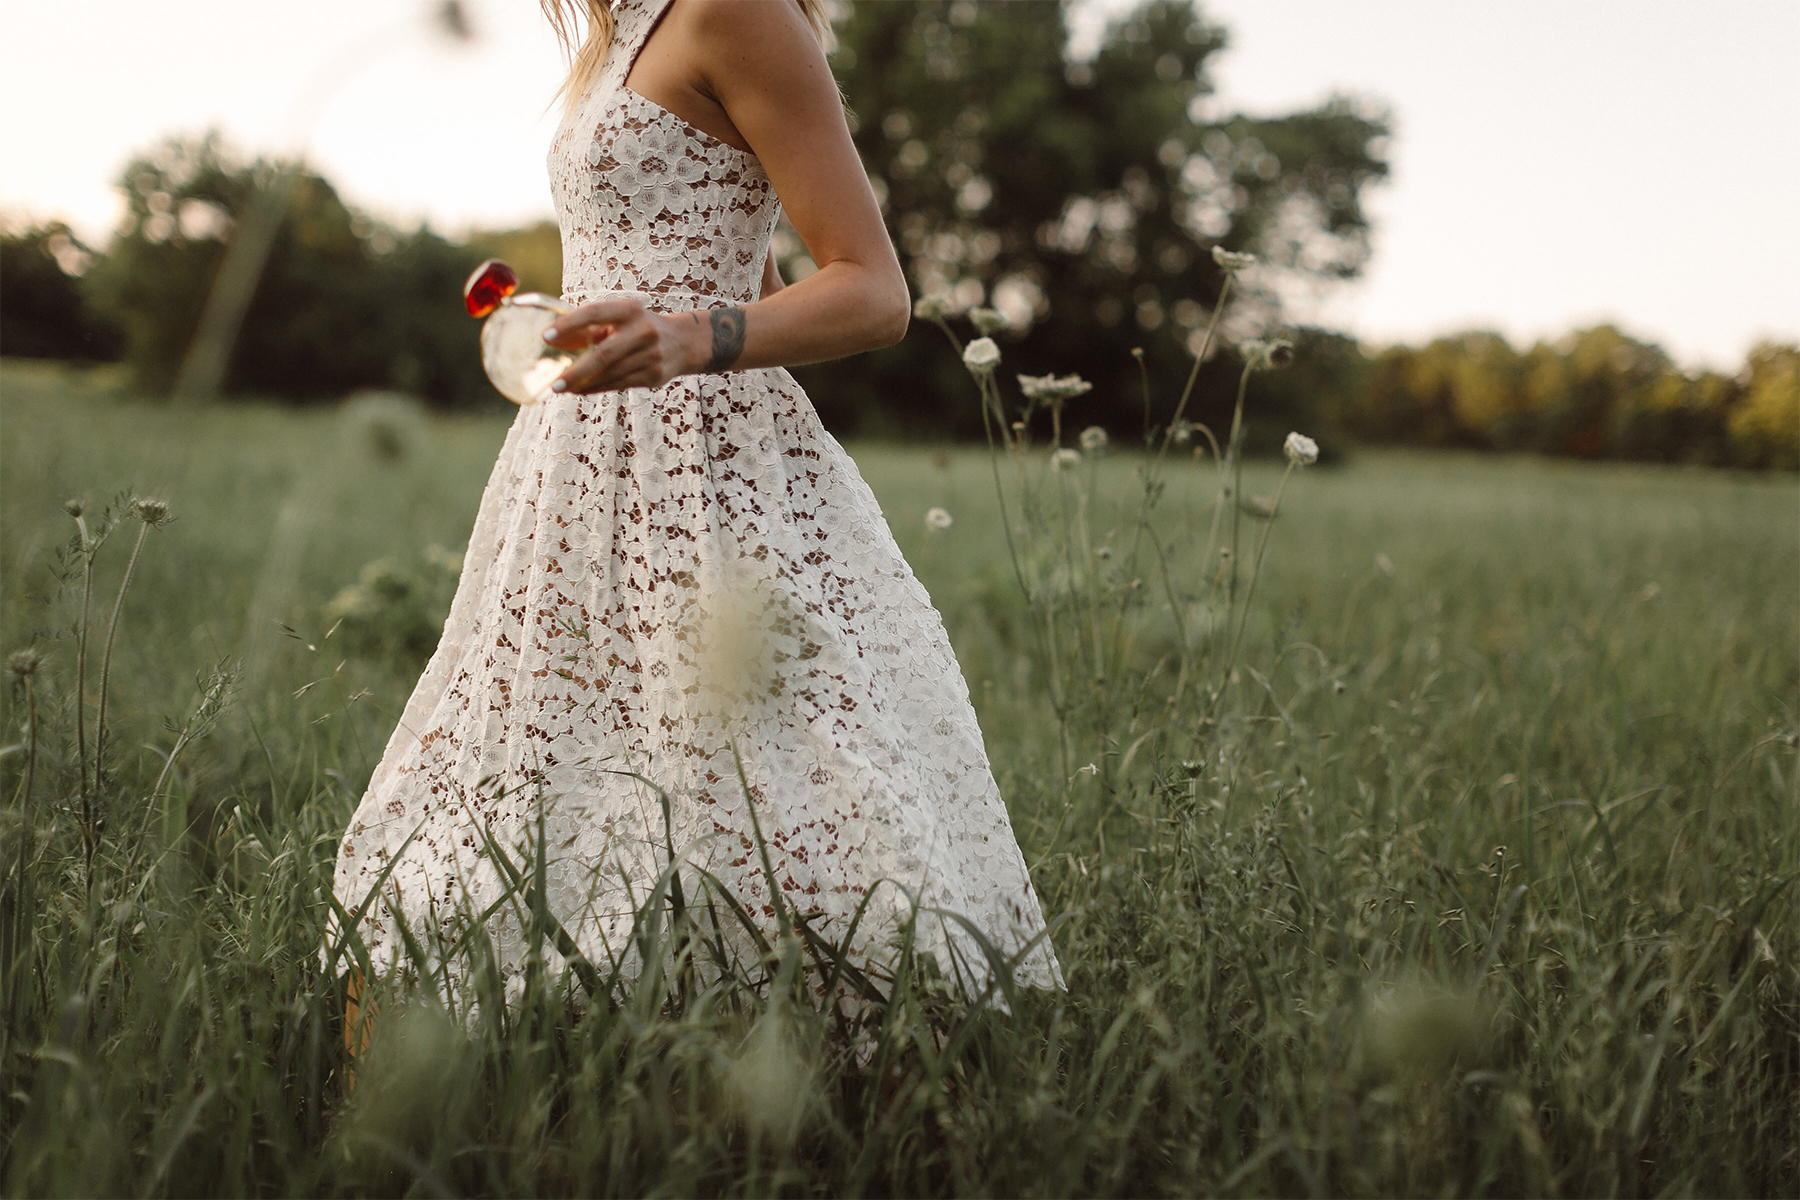 Fashion Jackson, Dallas Blogger, Fashion Blogger, Beauty Blogger, L'Occitane Terre de Lumiere Parfum, White Lace Dress